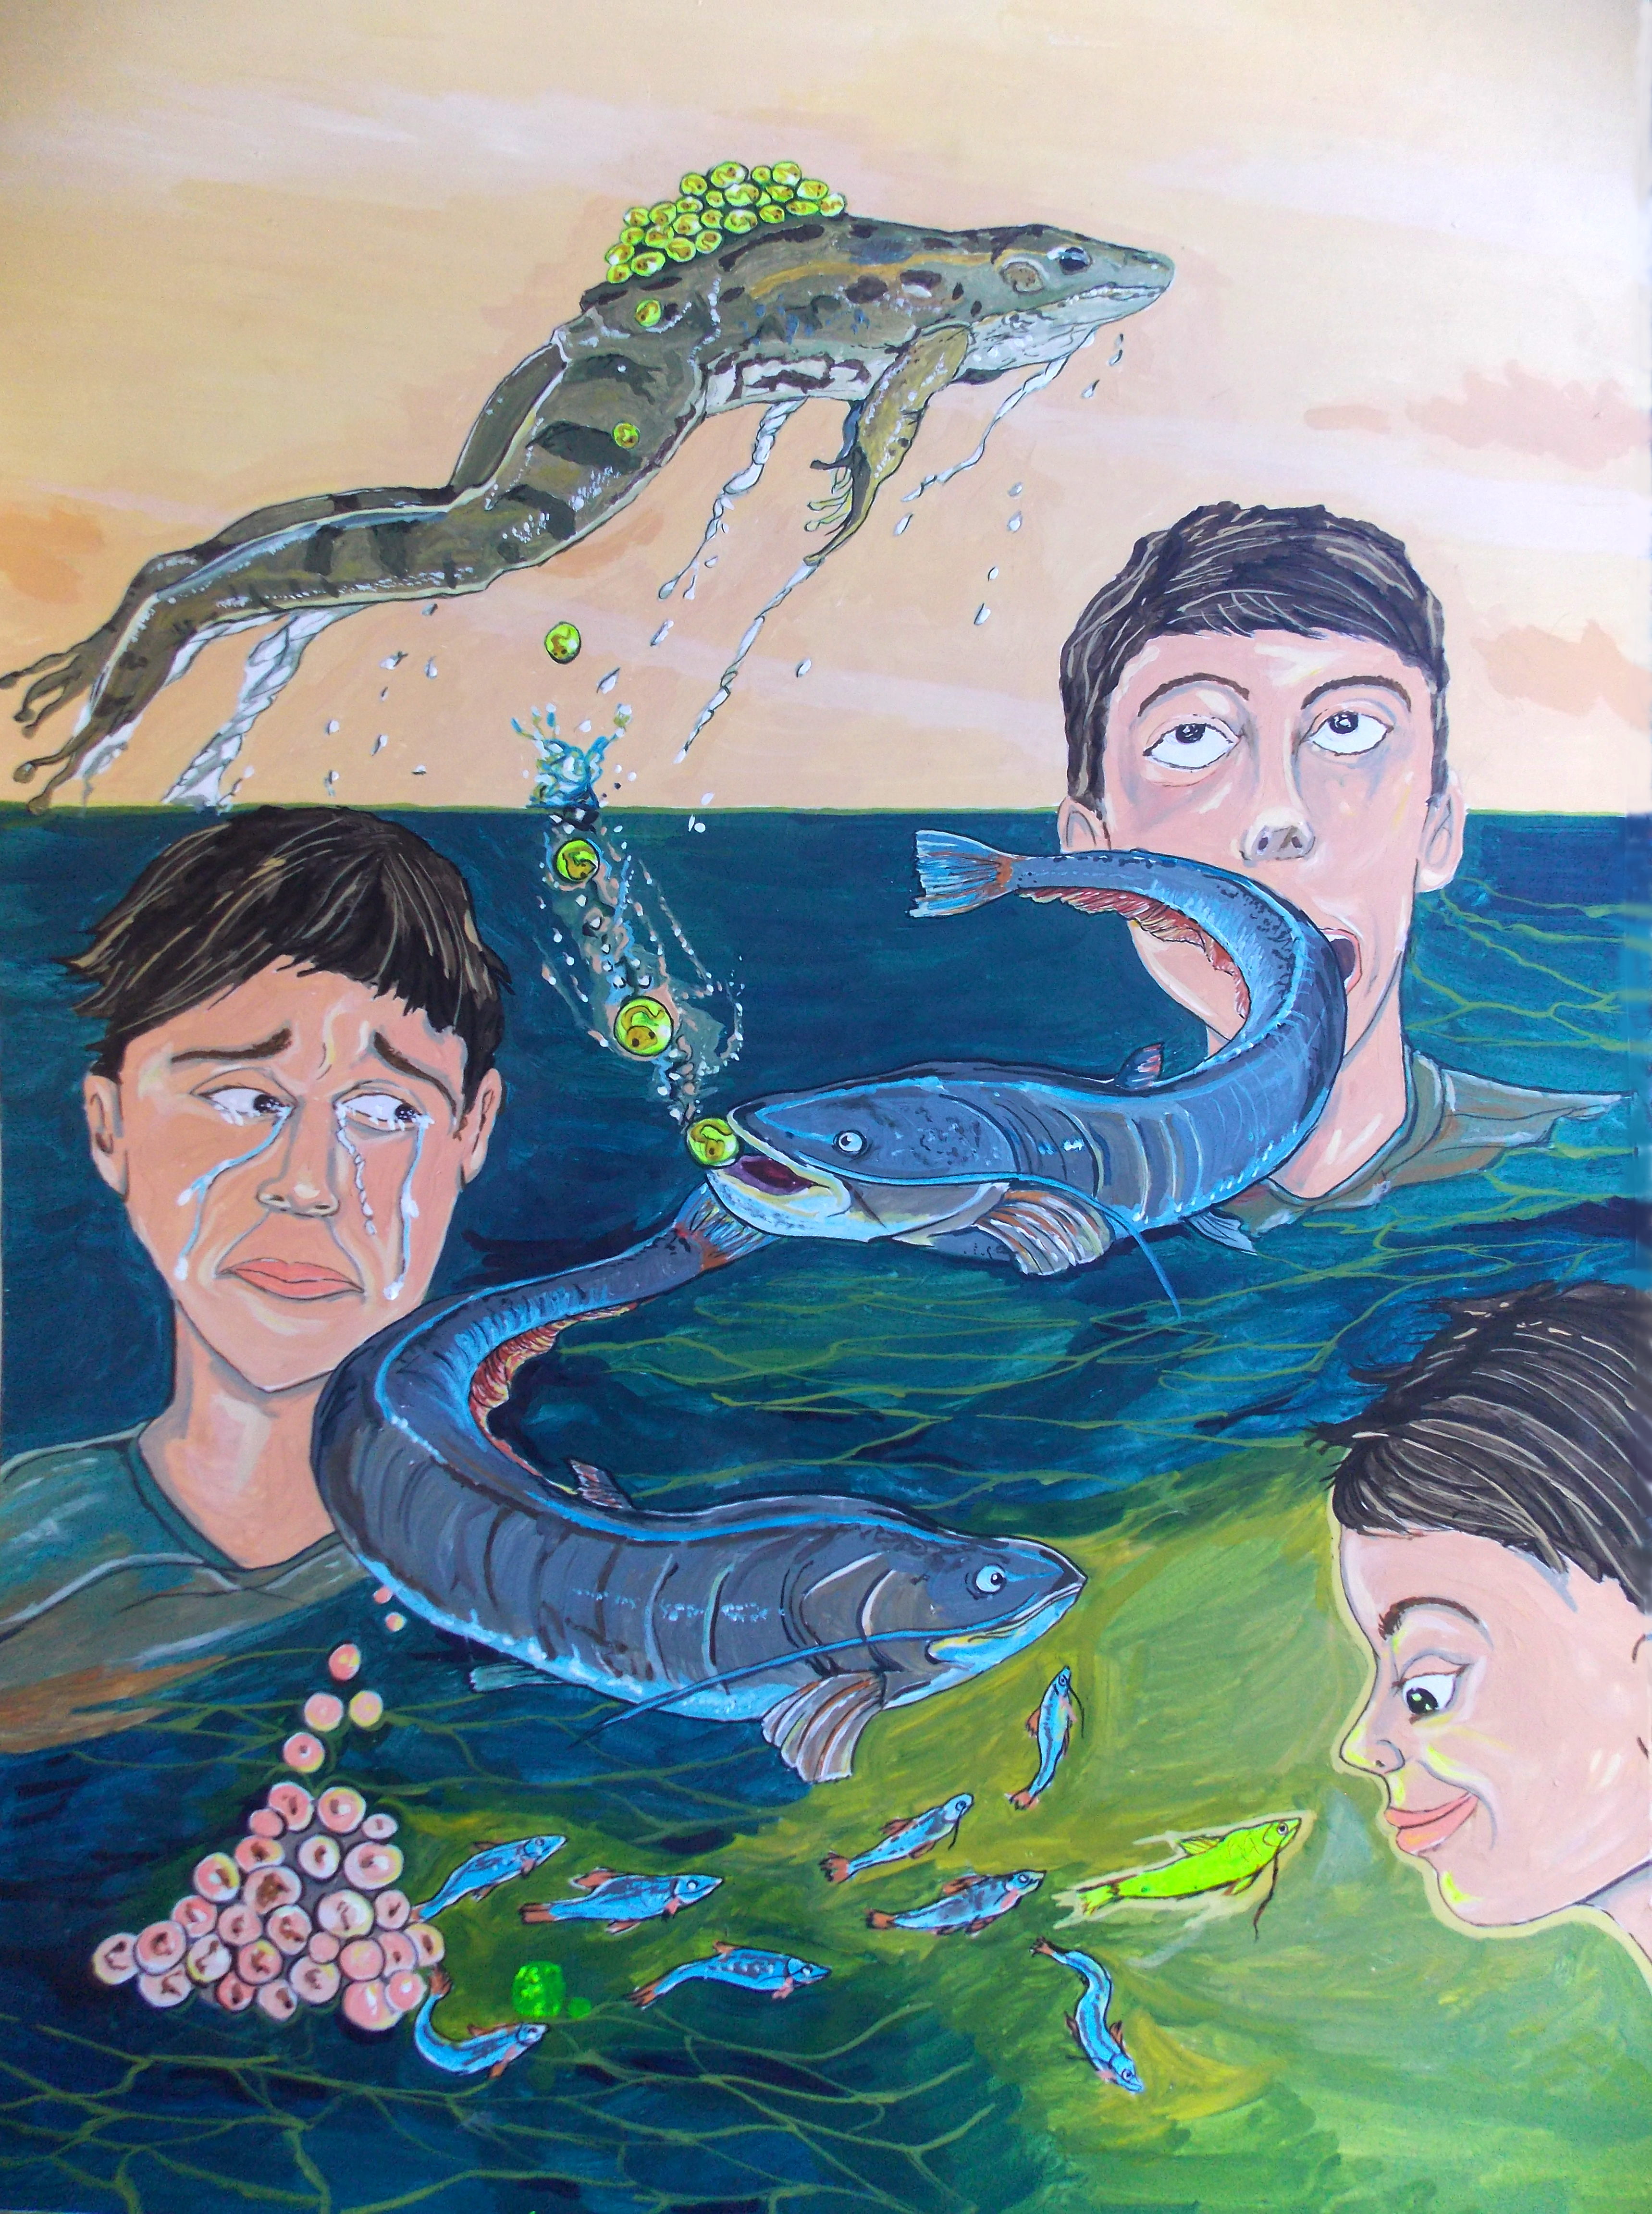 Lazaro Hurtado; EMOTIONAL Range, 2016, Original Painting Acrylic, 50 x 70 cm. Artwork description: 241 Illustrated thoughtsFrom awe to sadness and then, an unexpected outcomeAnimal, fish, Kids, conceptual, surrealism, expressionism...